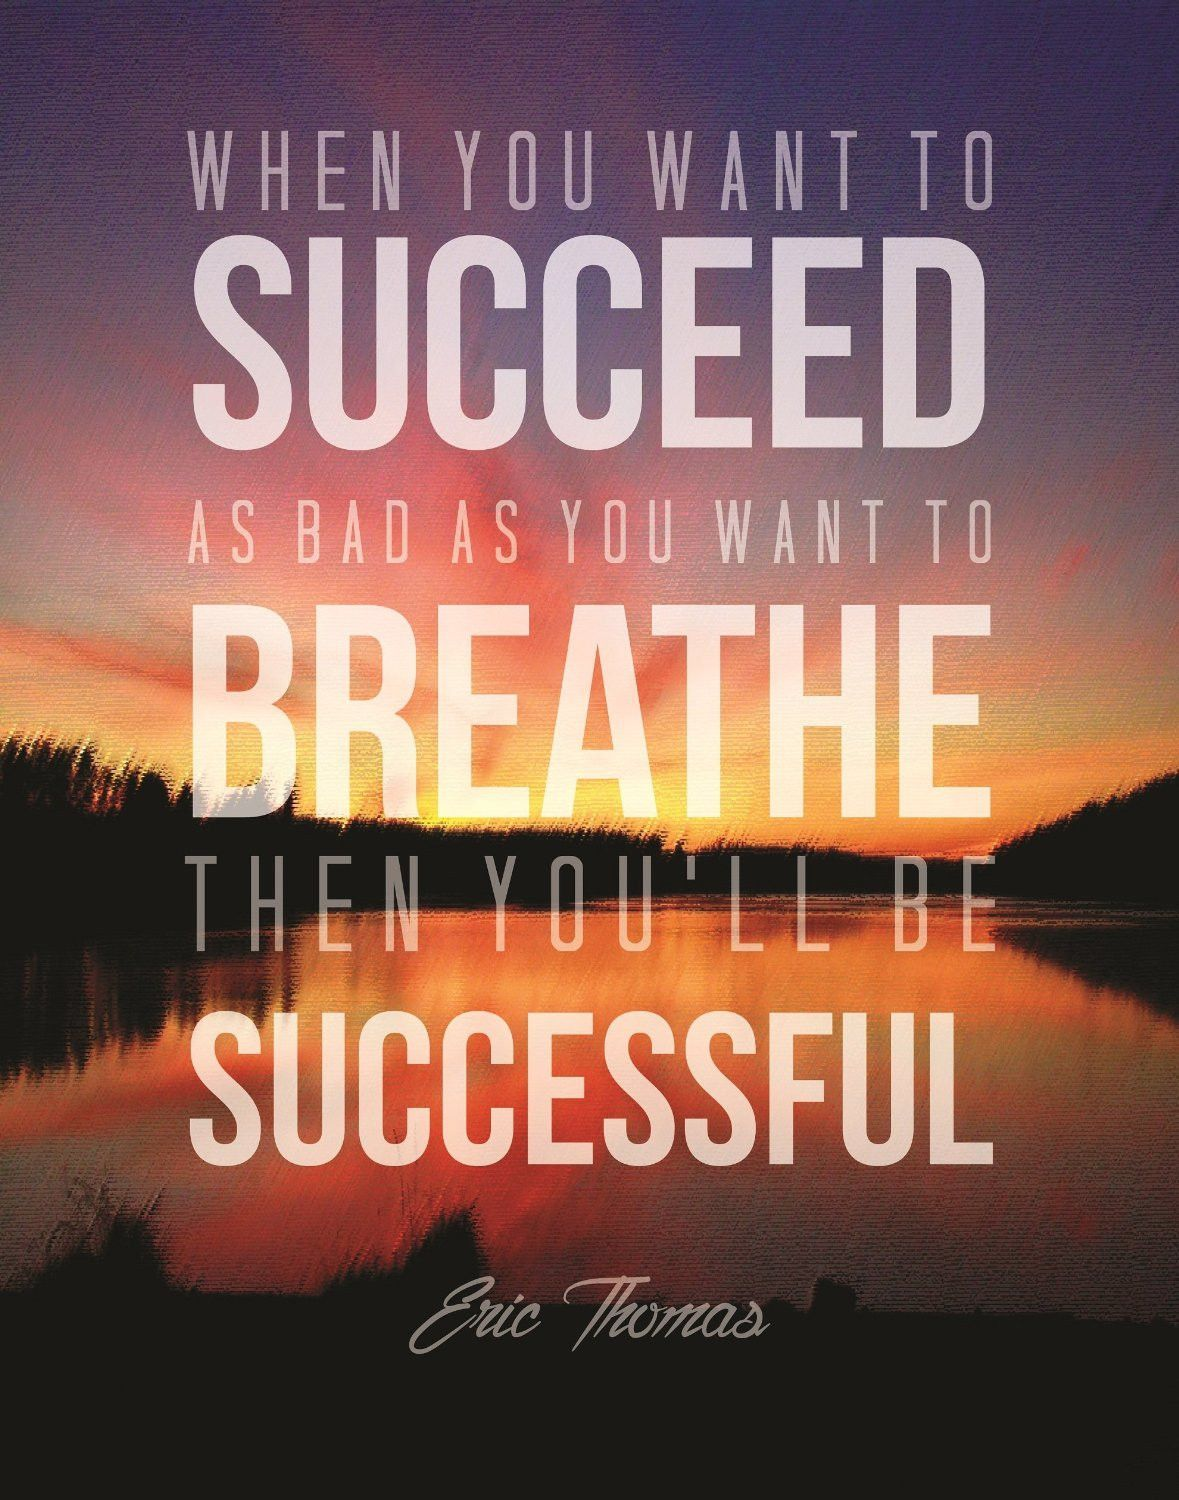 Successful You Then Bad Succeed Will You Want Be You Breath When Want